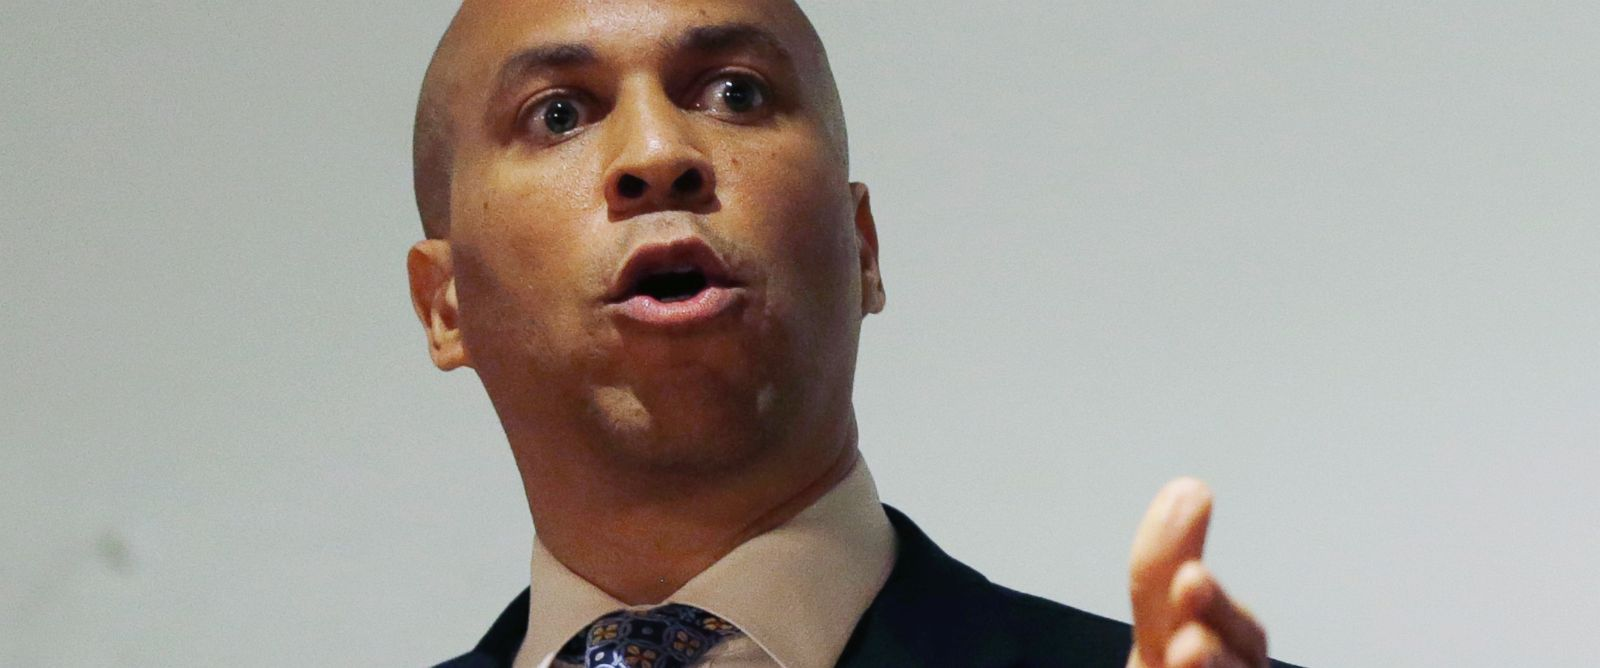 PHOTO: Cory Booker is pictured giving a speech in Deptford Township, N.J. on June 19, 2013.